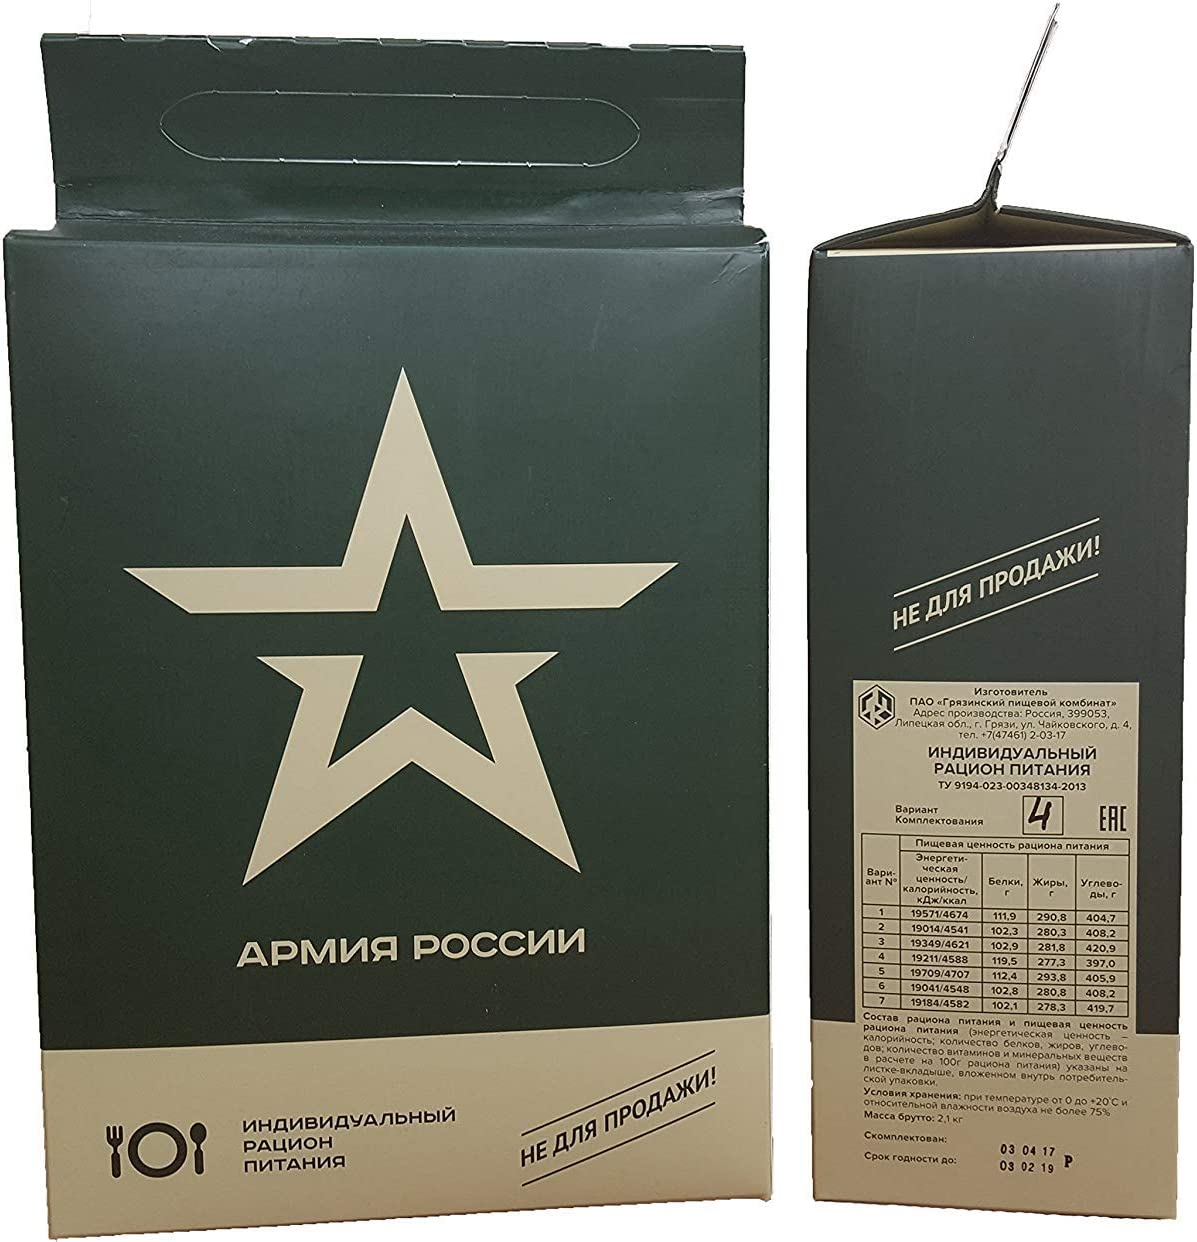 IRPRUS Military Russian Army Food Ration Daily Pack Mre Emergency Rations Voentorg 4.6 LB (2.1 kg)